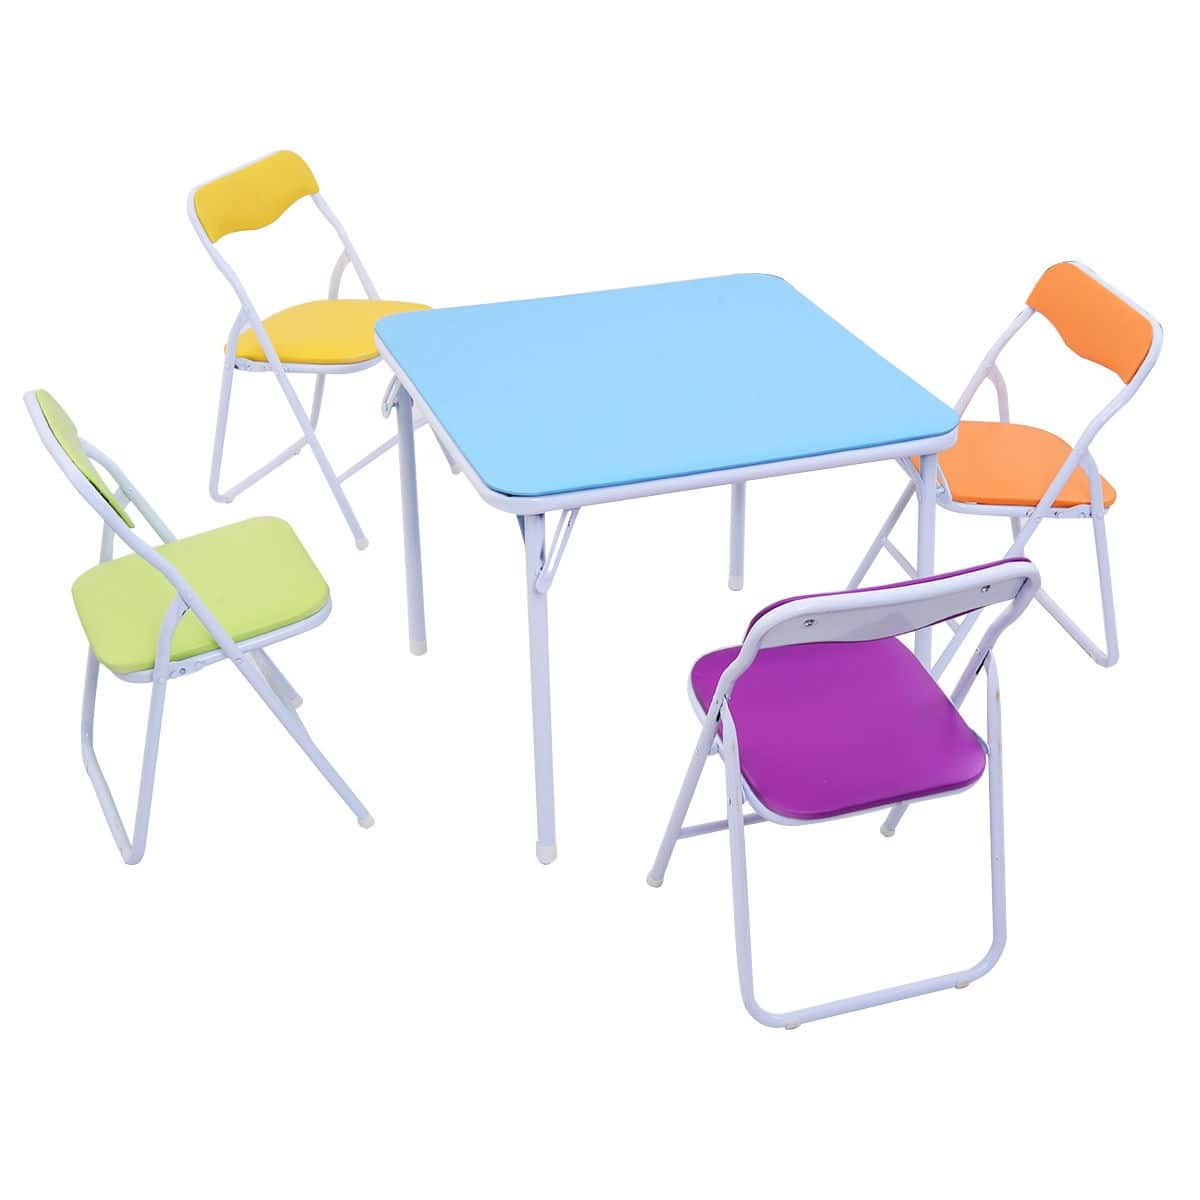 Set of 5 Multicolor Kids Table and Chairs  - $57.95 + Free Shipping